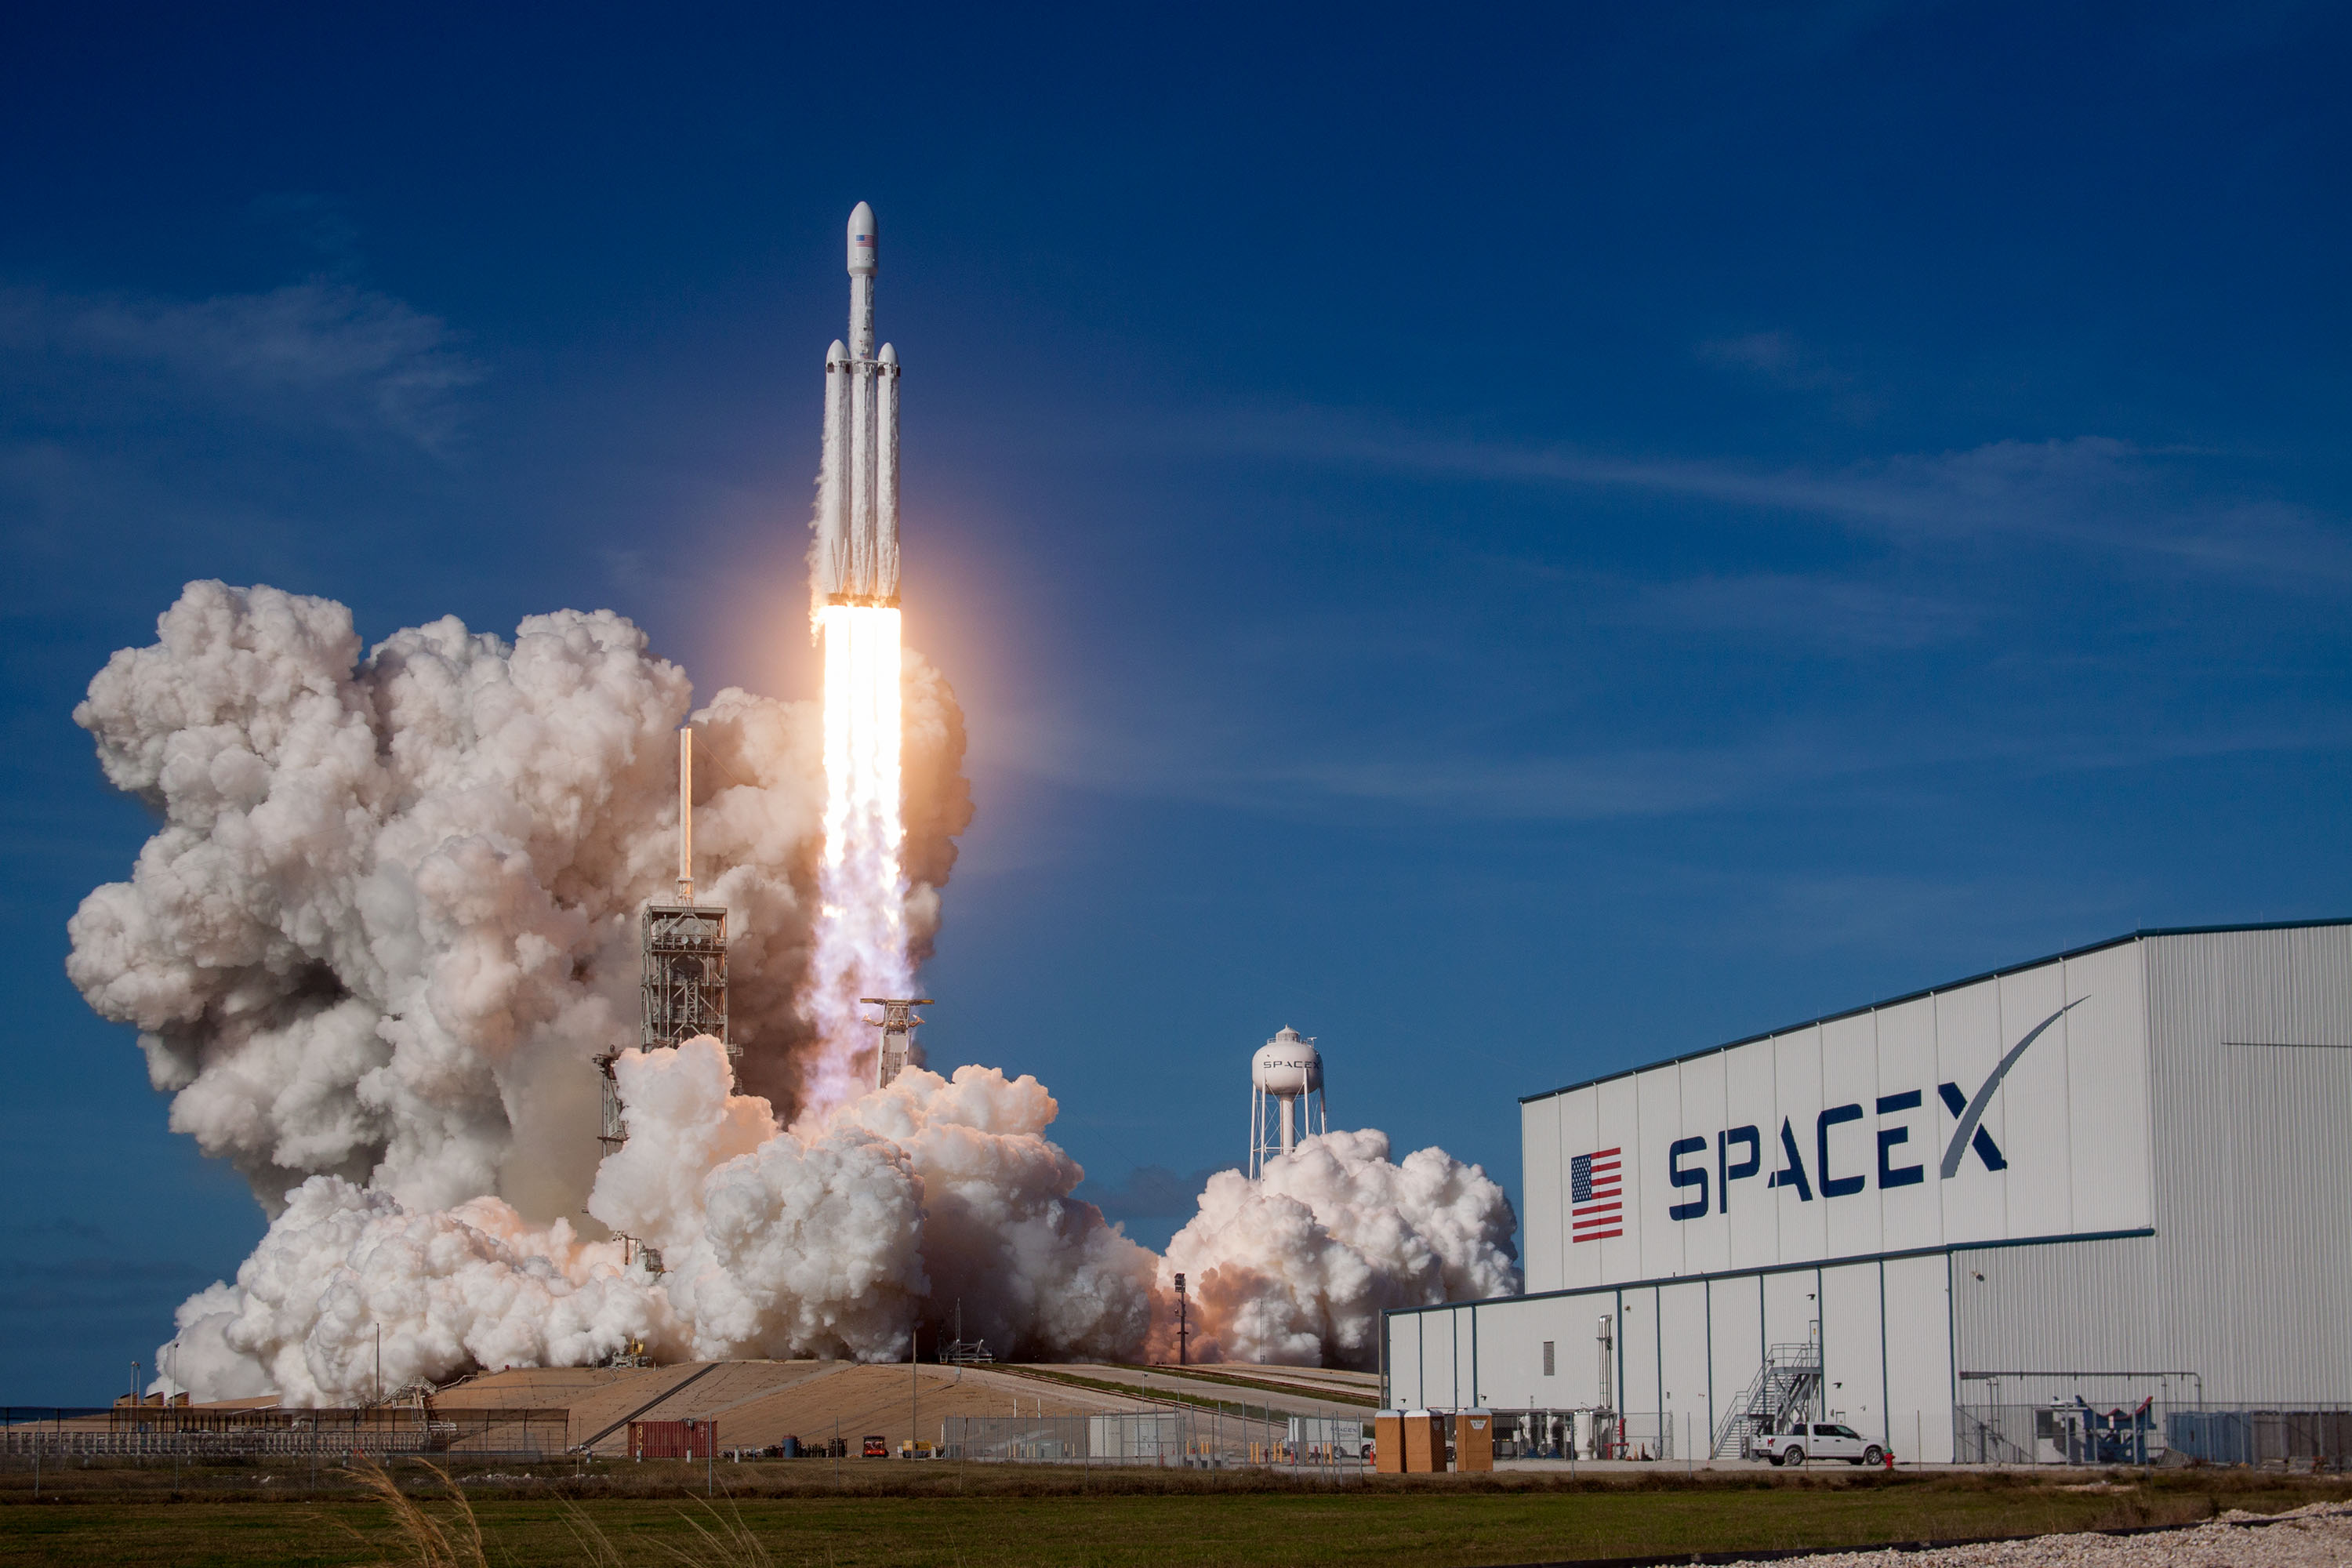 The next Falcon Heavy launch is arguably the most exciting one to date